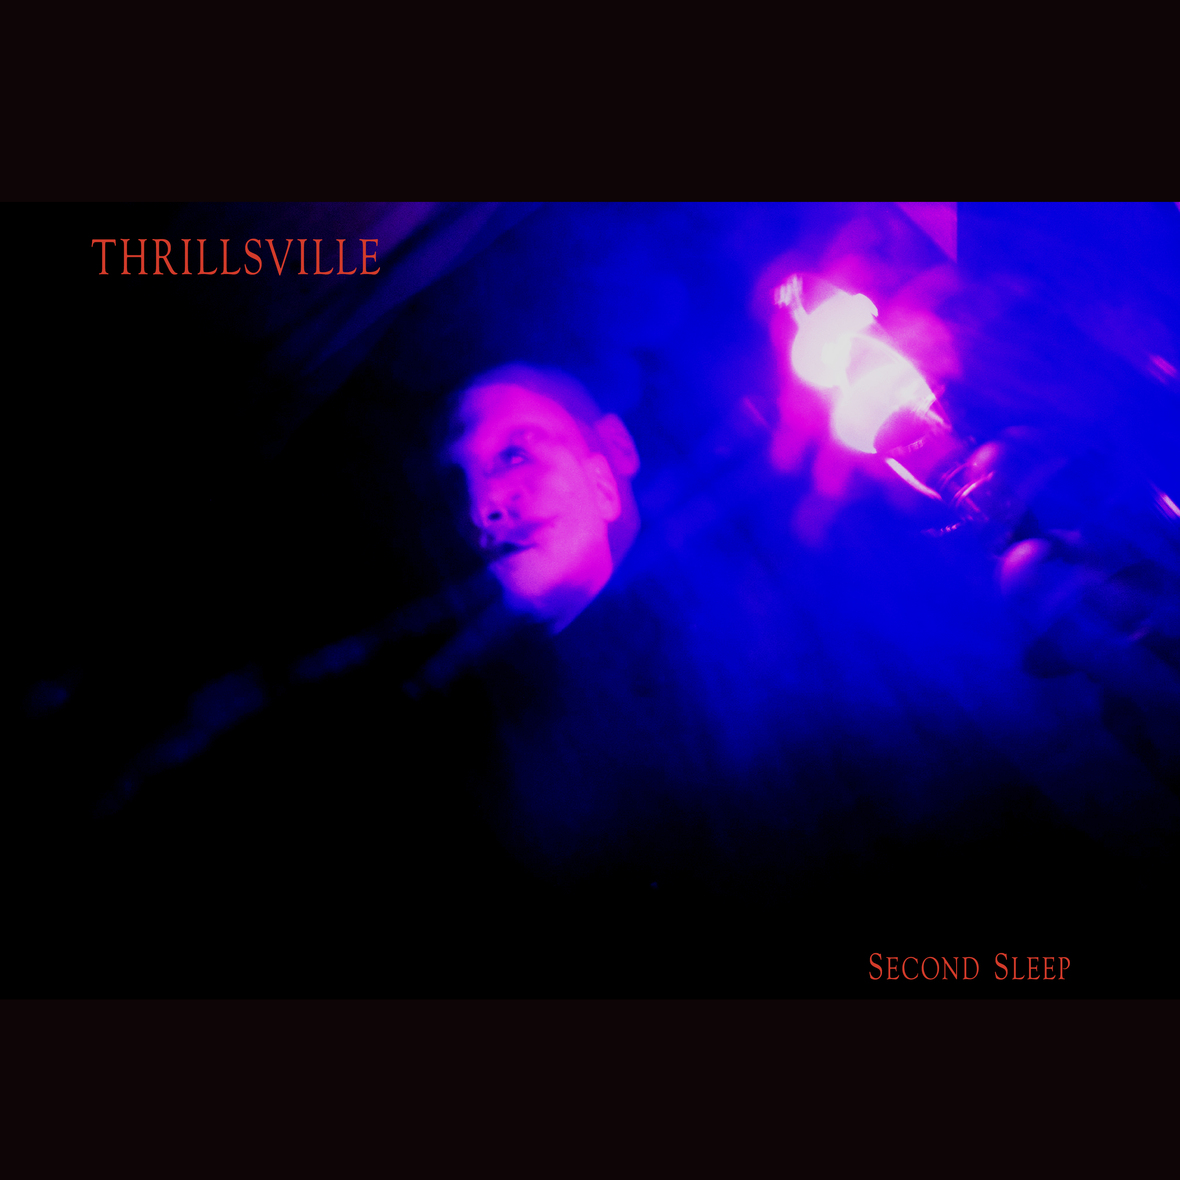 Thrillsville Second Sleep Cover 01